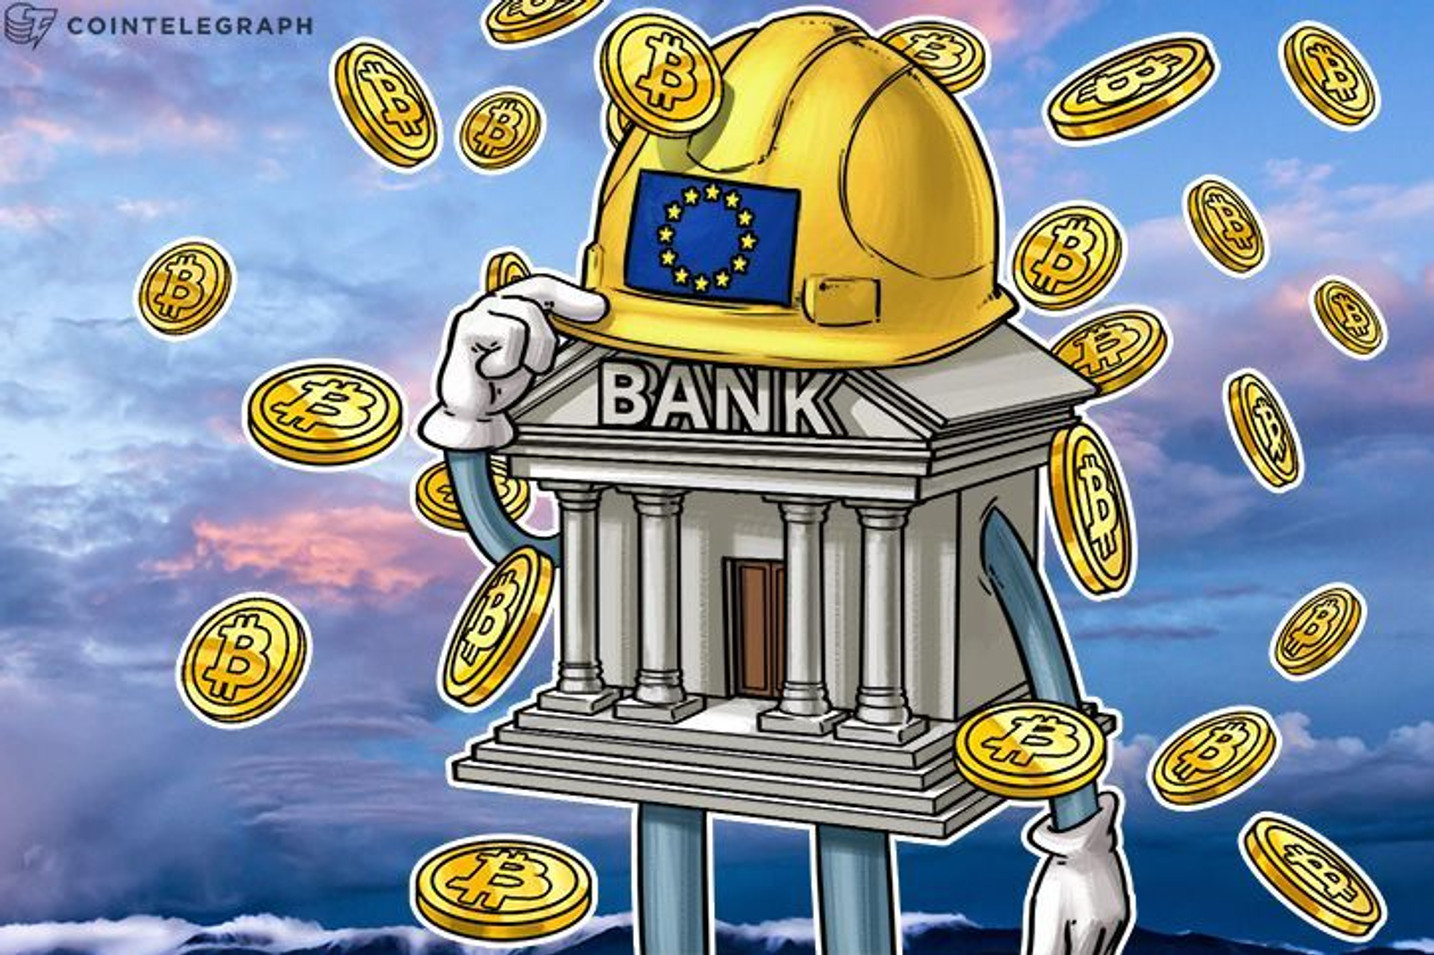 Don't Regulate Crypto, Regulate Financial Institutions, Says EU Banking Authority Chair